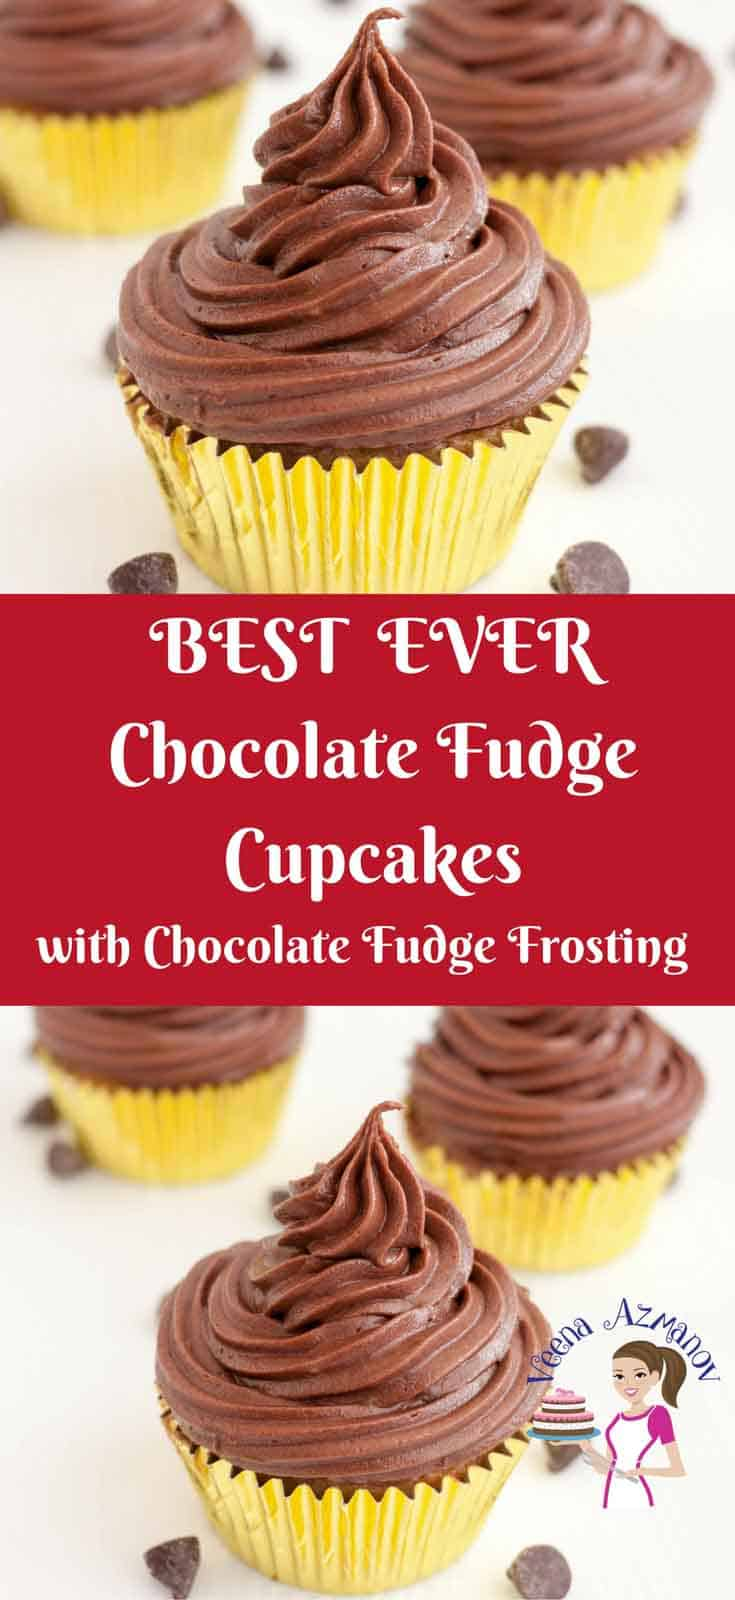 TThese chocolate fudge cupcakes are the ultimate luxury for any chocolate lover. Made with real chocolate in the batter as well as the frosting. The cupcakes are moist light with a soft crumb and the frosting is rich, dark and indulgent via veenaazmanov.com #chocolate #Fudge #cupcakes #Buttercream #chocolatefudgecupcakes #veenaazmanov #recipe #baking